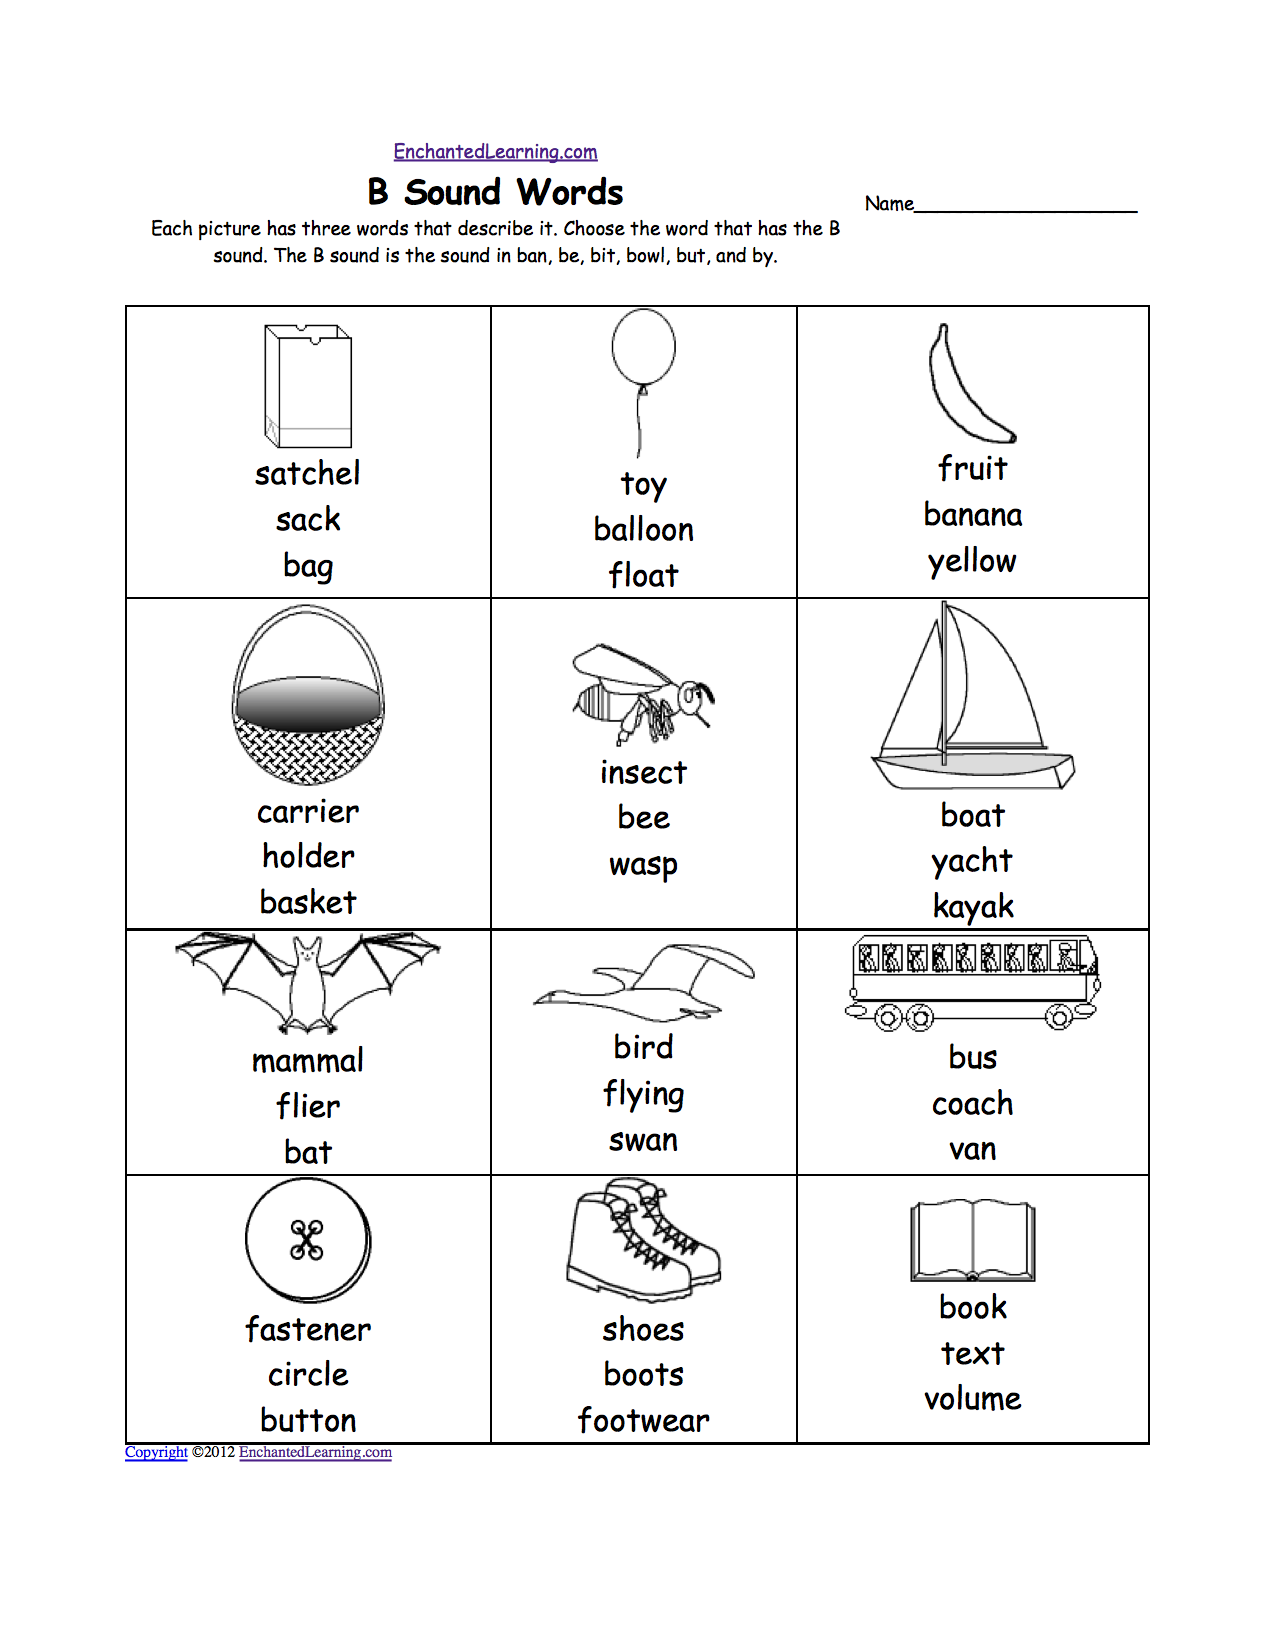 Aldiablosus  Winning Phonics Worksheets Multiple Choice Worksheets To Print  With Excellent Quotbquot Sound Phonics Worksheet Multiple Choice Each Picture Has Three Words That Describe It Choose The Word That Has A Quotbquot Sound The Quotbquot Sound Is The Sound  With Divine Letter I Worksheets Kindergarten Also First Grade Punctuation Worksheets In Addition Slant Asymptote Worksheet And Amphibian Worksheet As Well As Inner And Outer Planets Worksheet Additionally Equivalent Decimals Worksheets From Enchantedlearningcom With Aldiablosus  Excellent Phonics Worksheets Multiple Choice Worksheets To Print  With Divine Quotbquot Sound Phonics Worksheet Multiple Choice Each Picture Has Three Words That Describe It Choose The Word That Has A Quotbquot Sound The Quotbquot Sound Is The Sound  And Winning Letter I Worksheets Kindergarten Also First Grade Punctuation Worksheets In Addition Slant Asymptote Worksheet From Enchantedlearningcom